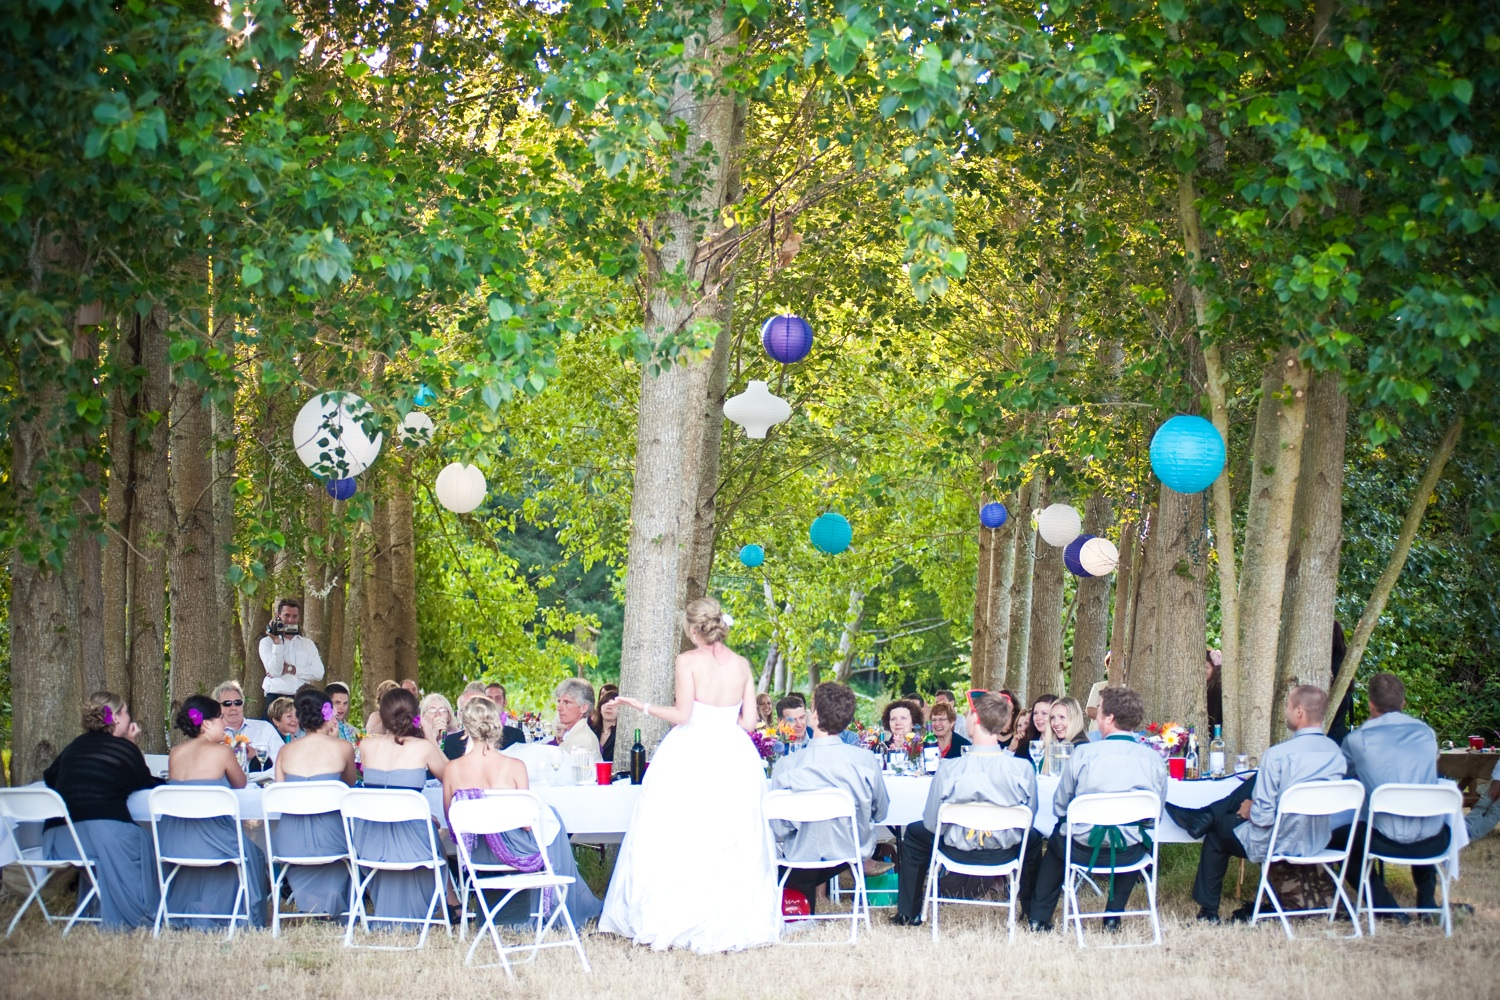 Wedding Planning Ideas: Backyard Wedding Ideas